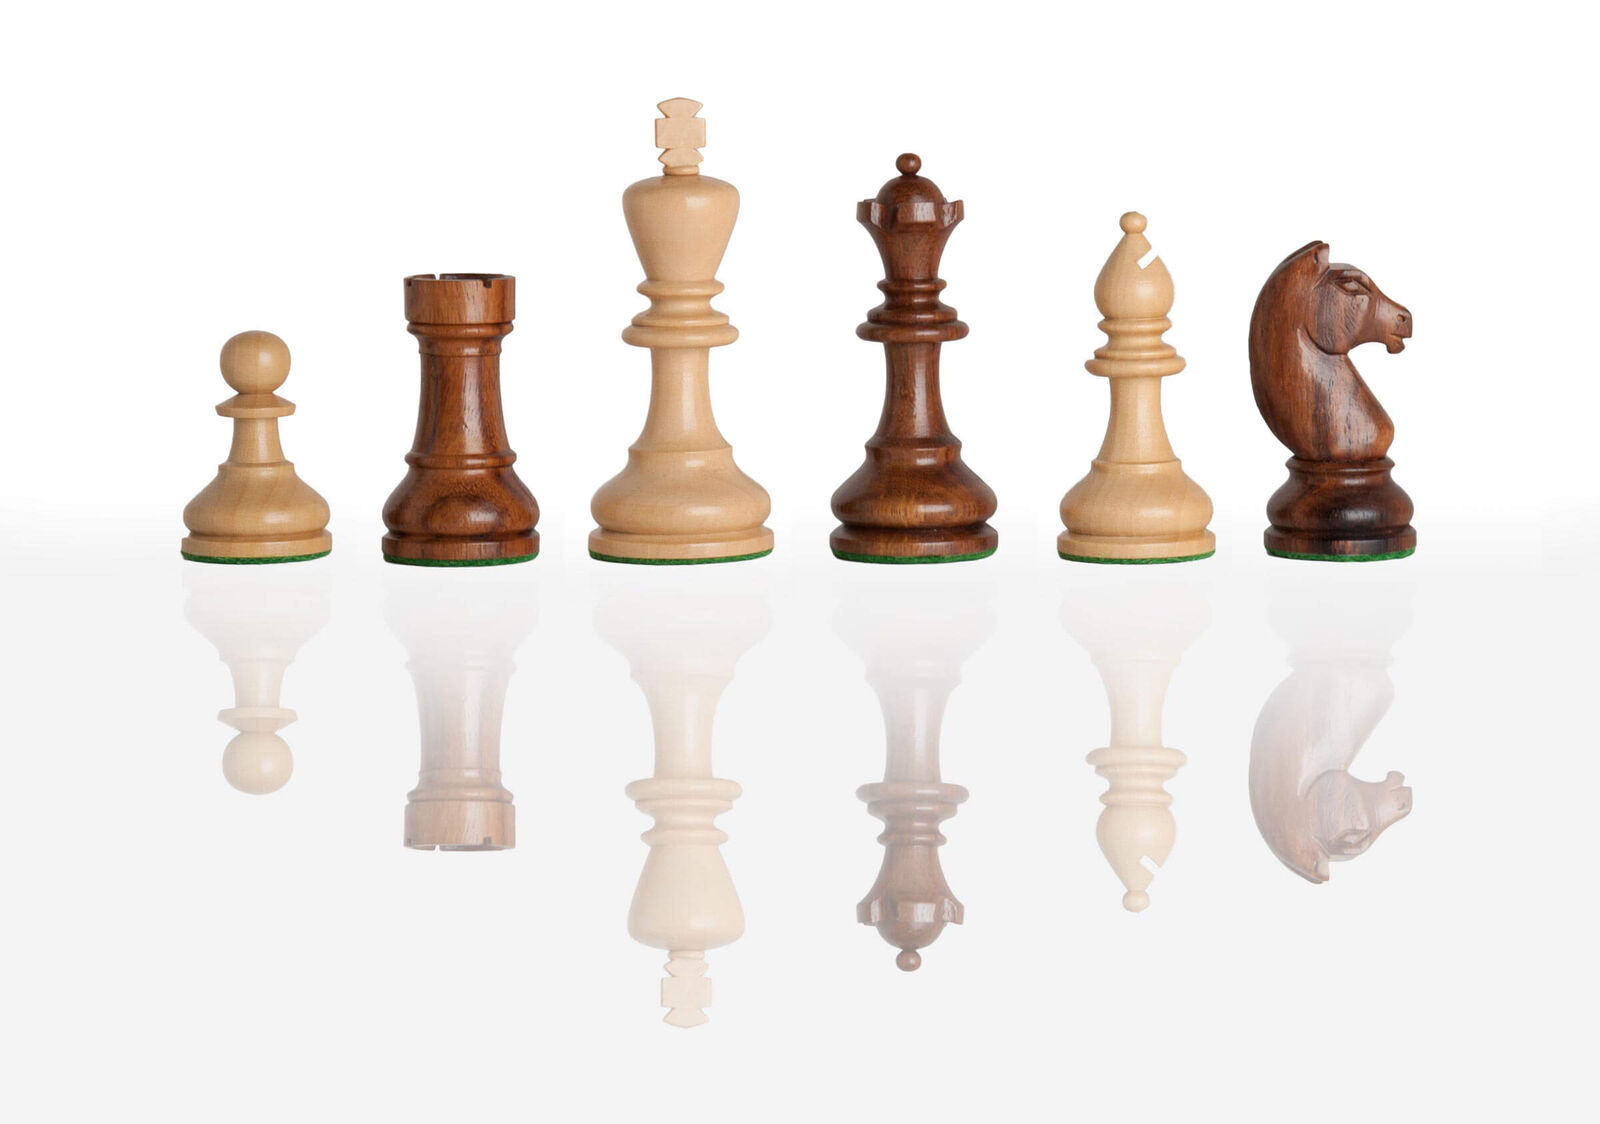 The Modern Chess Set - Pieces Only - 3.75  King - golden pinkwood